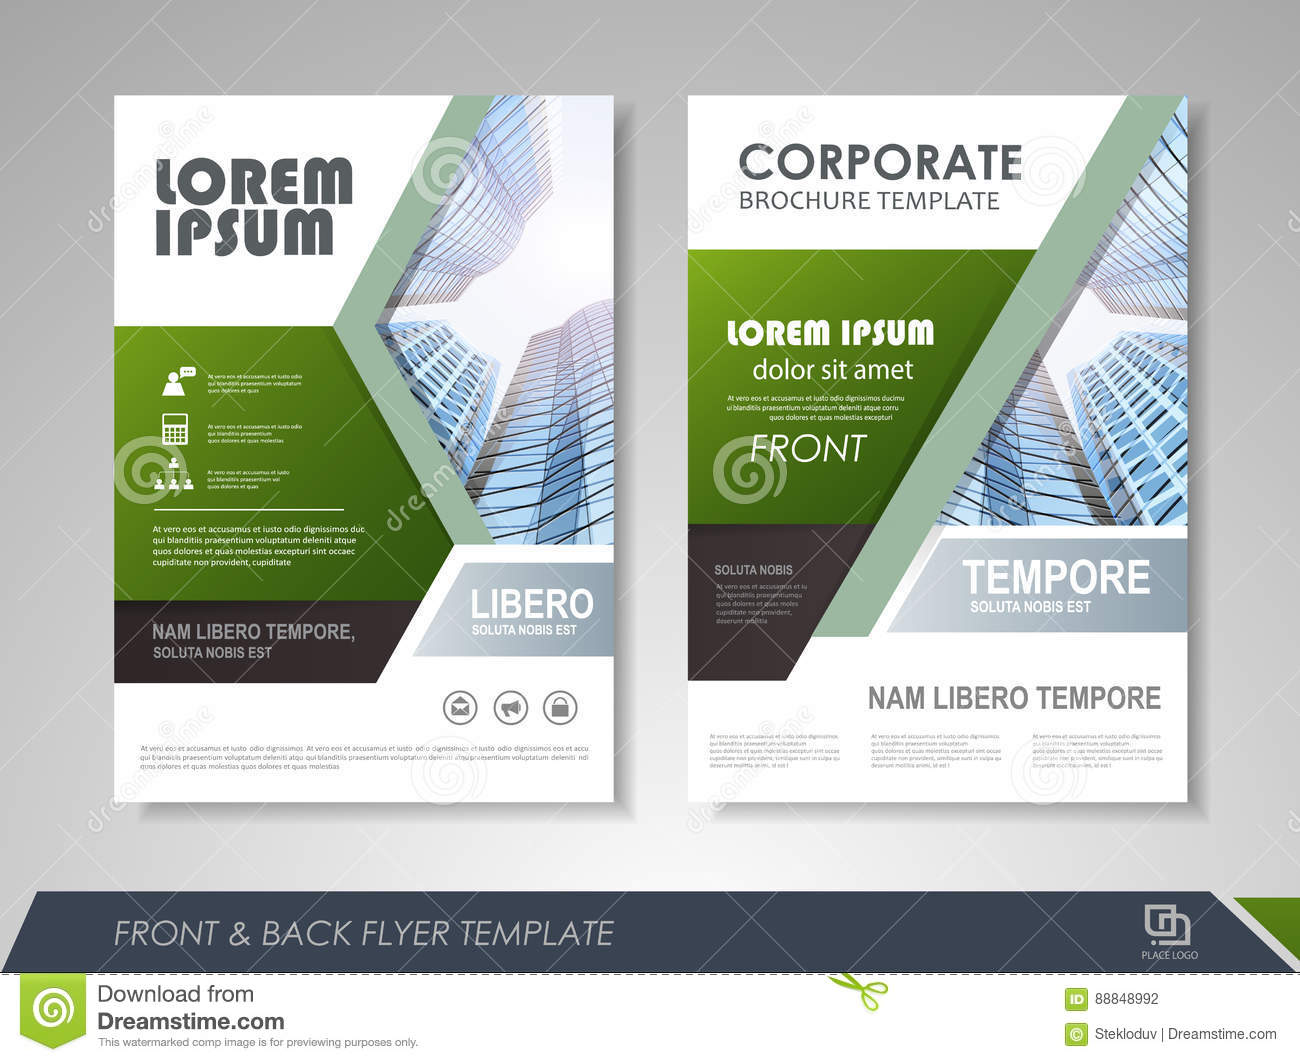 Corporate business brochure stock vector image 88848992 for Company brochure template free download